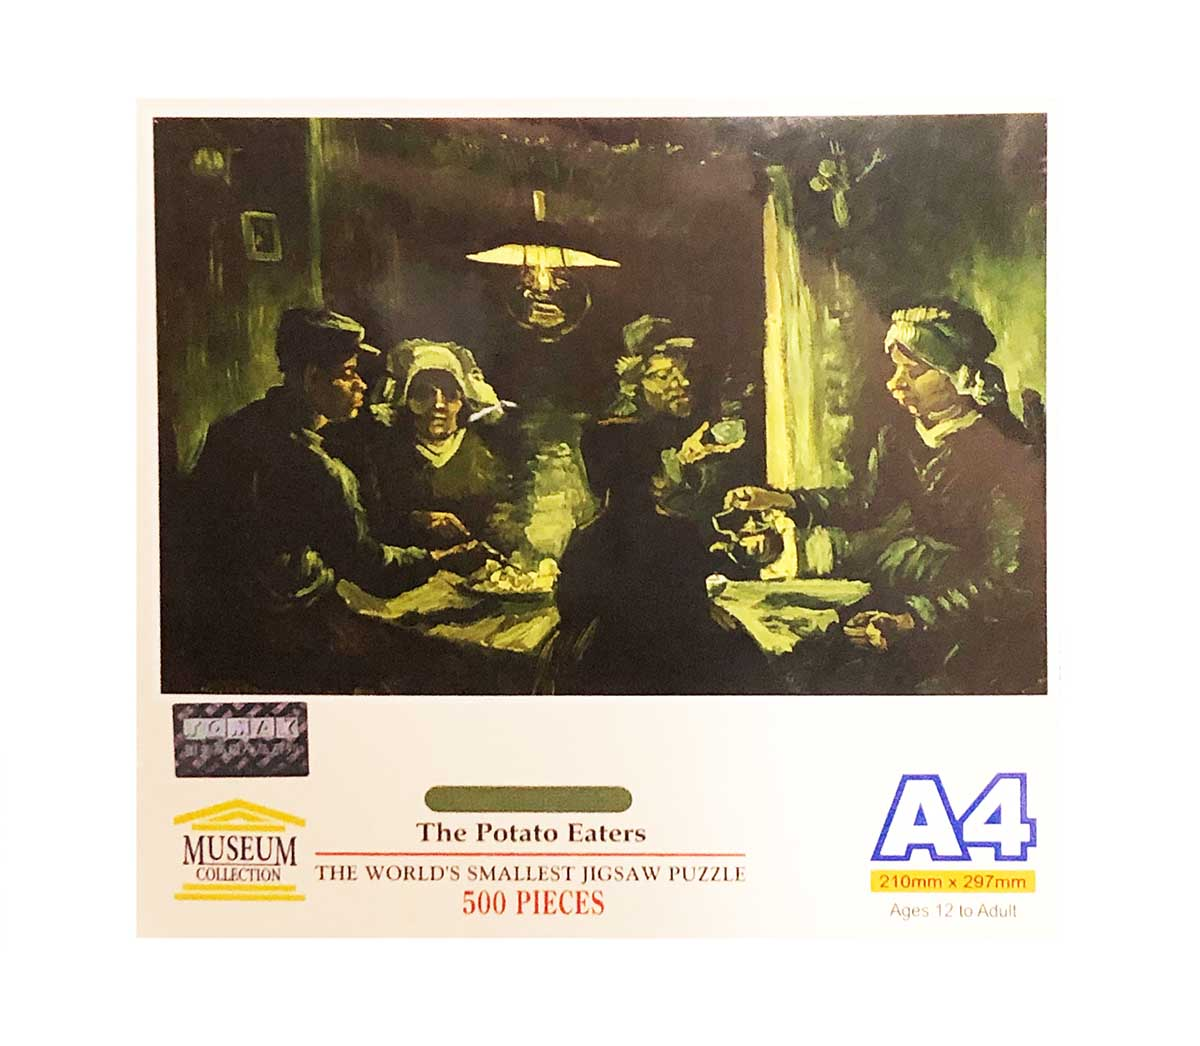 The Potato Eaters - Scratch and Dent Fine Art Jigsaw Puzzle